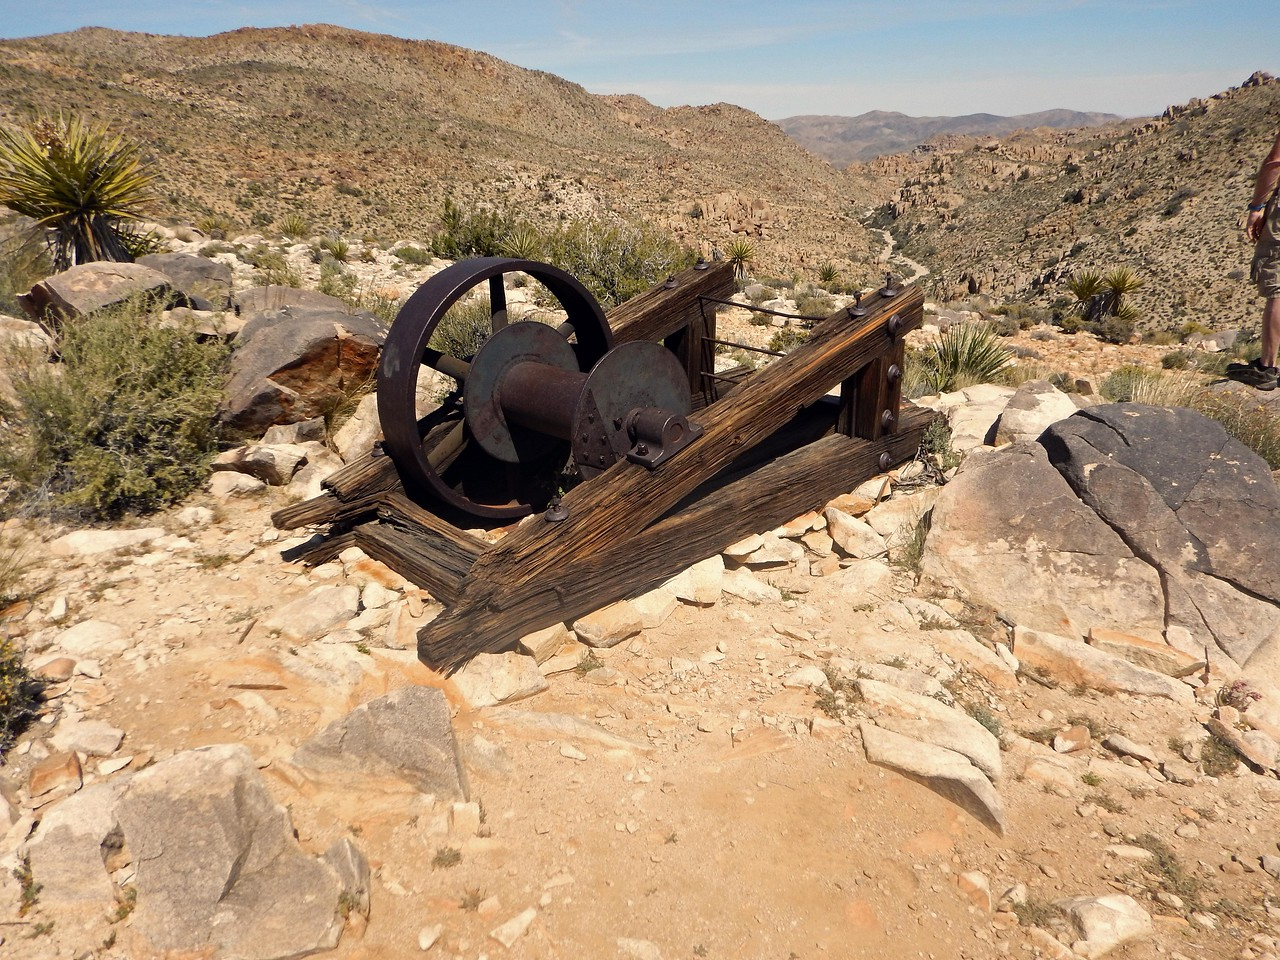 piece of machinery from the mining days